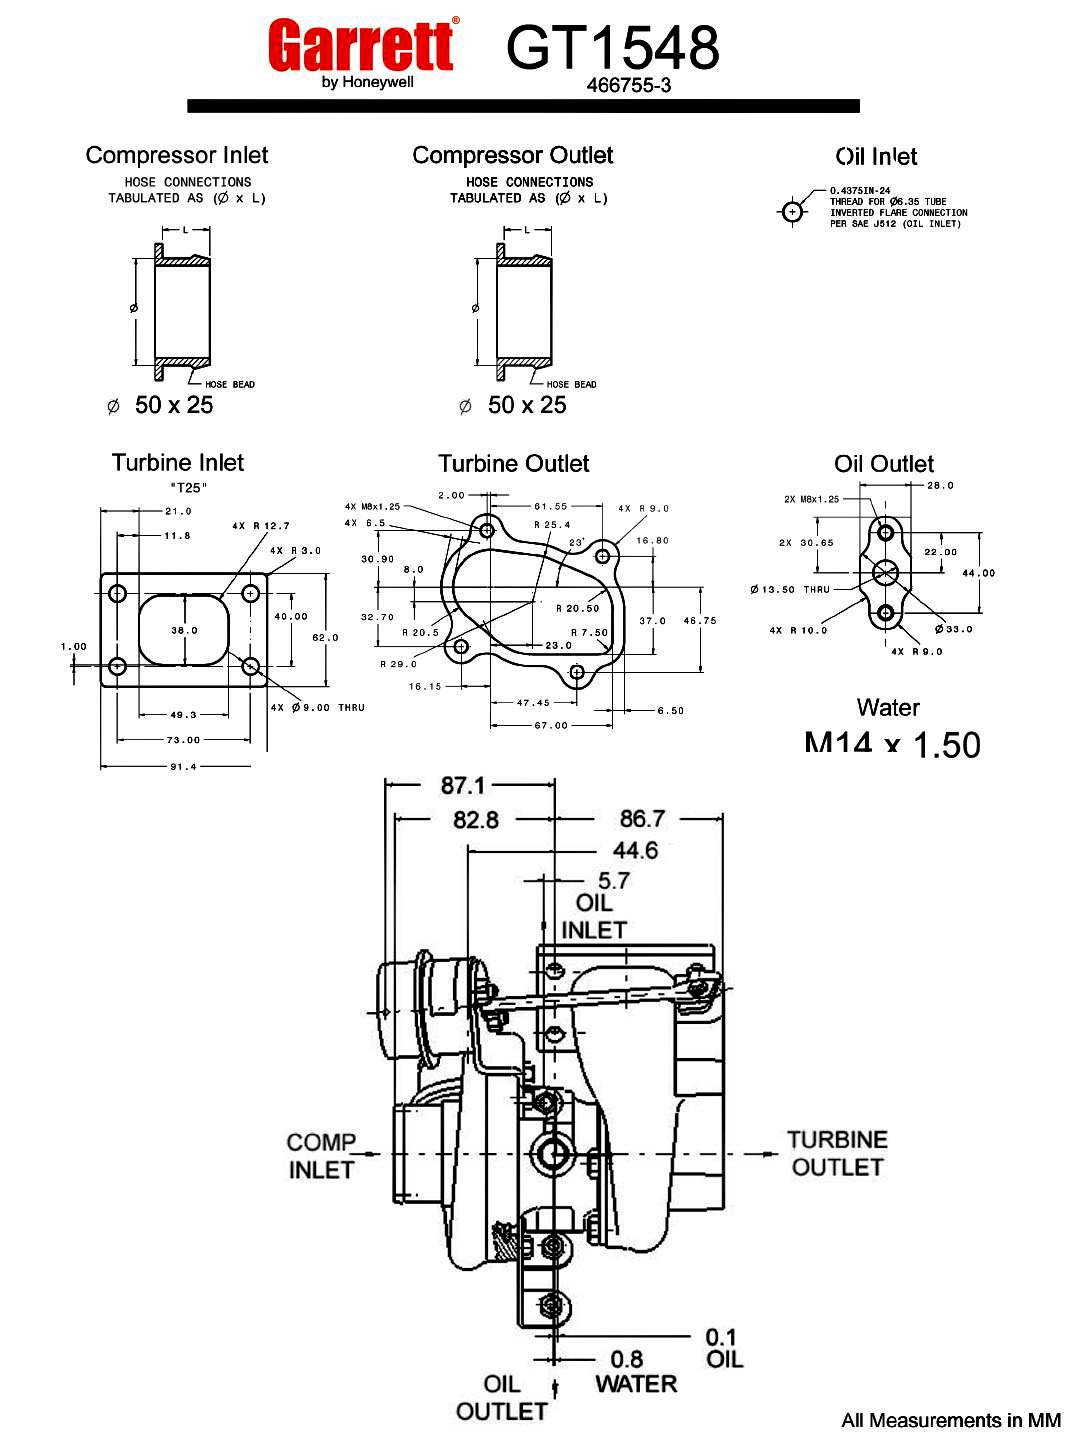 Garrett Gt15 Gt1548 200 Hp Turbocharger Specs Saab 93 1 9 Tid Wiring Diagram Turbo Measurements In Mm Flanges Diameter Honeywell 1071x1439